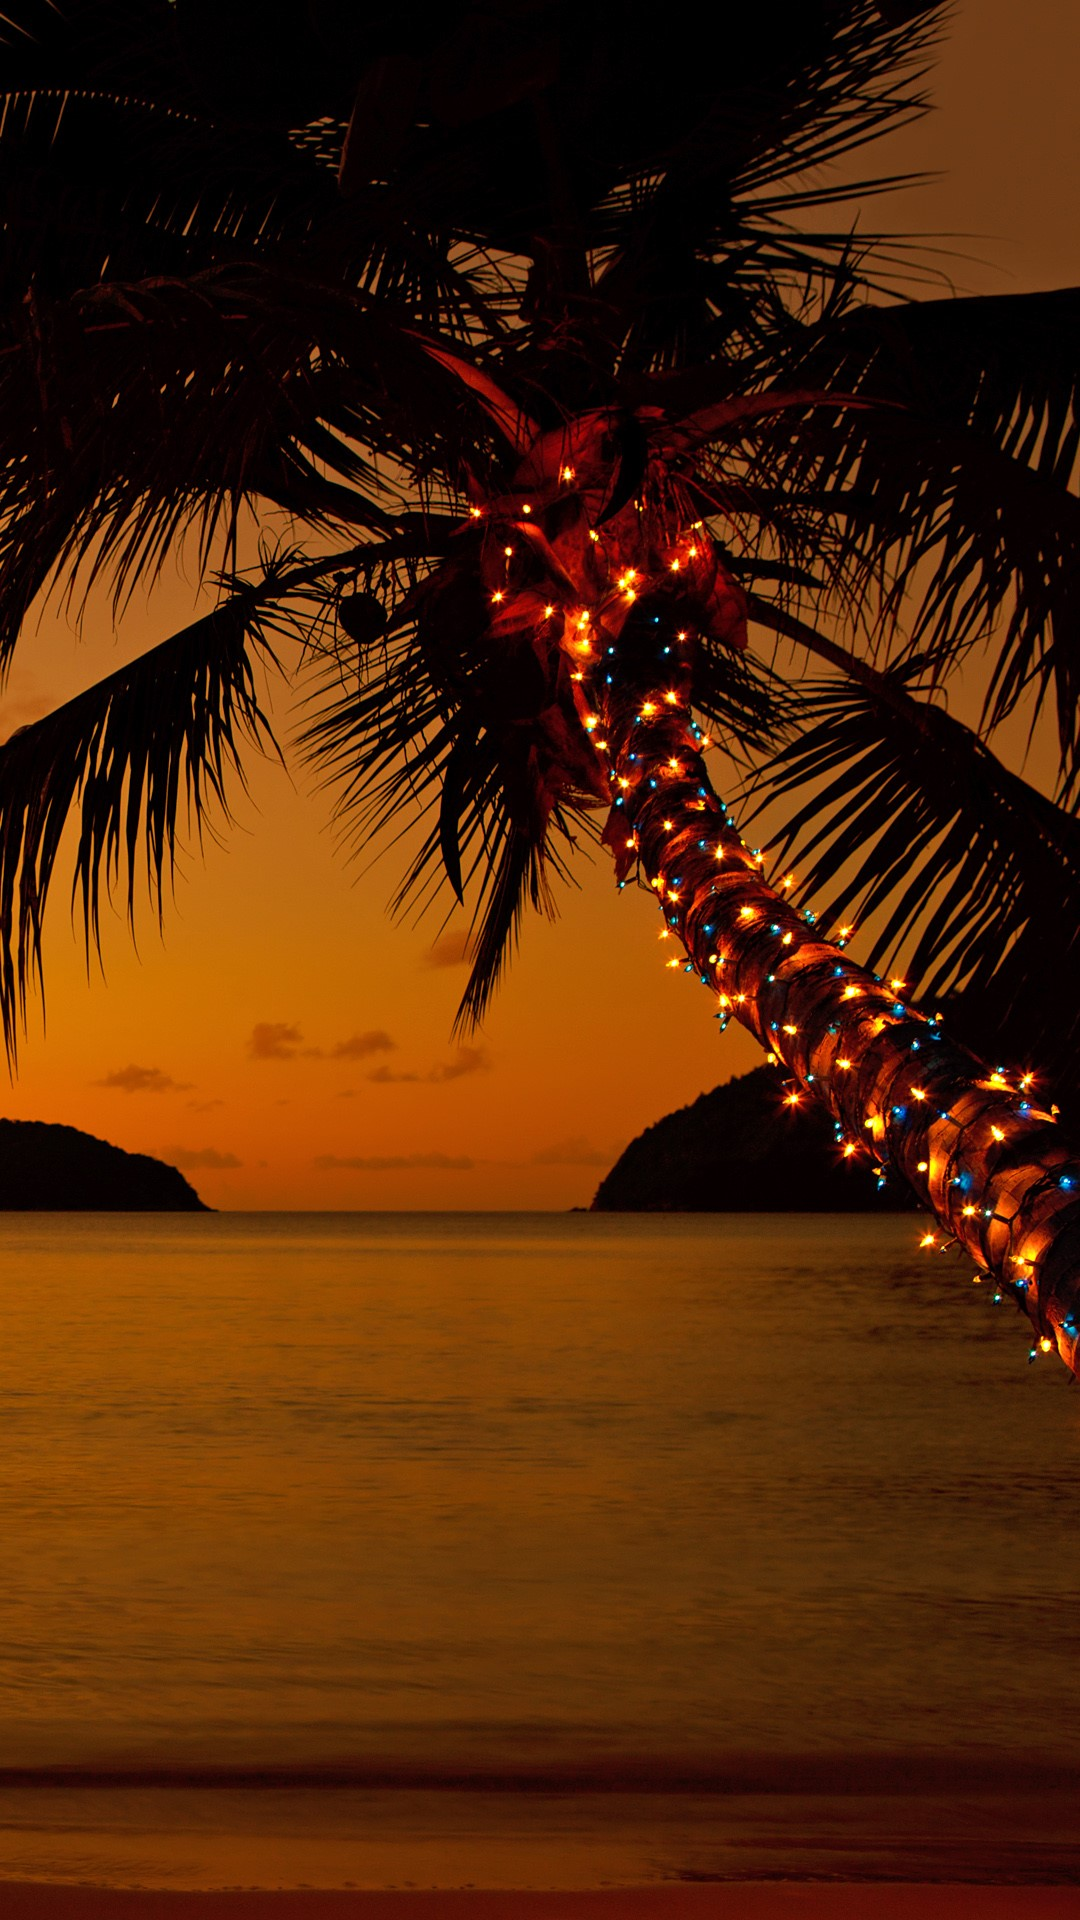 Christmas lights on a palm tree at the Caribbean beach at ...